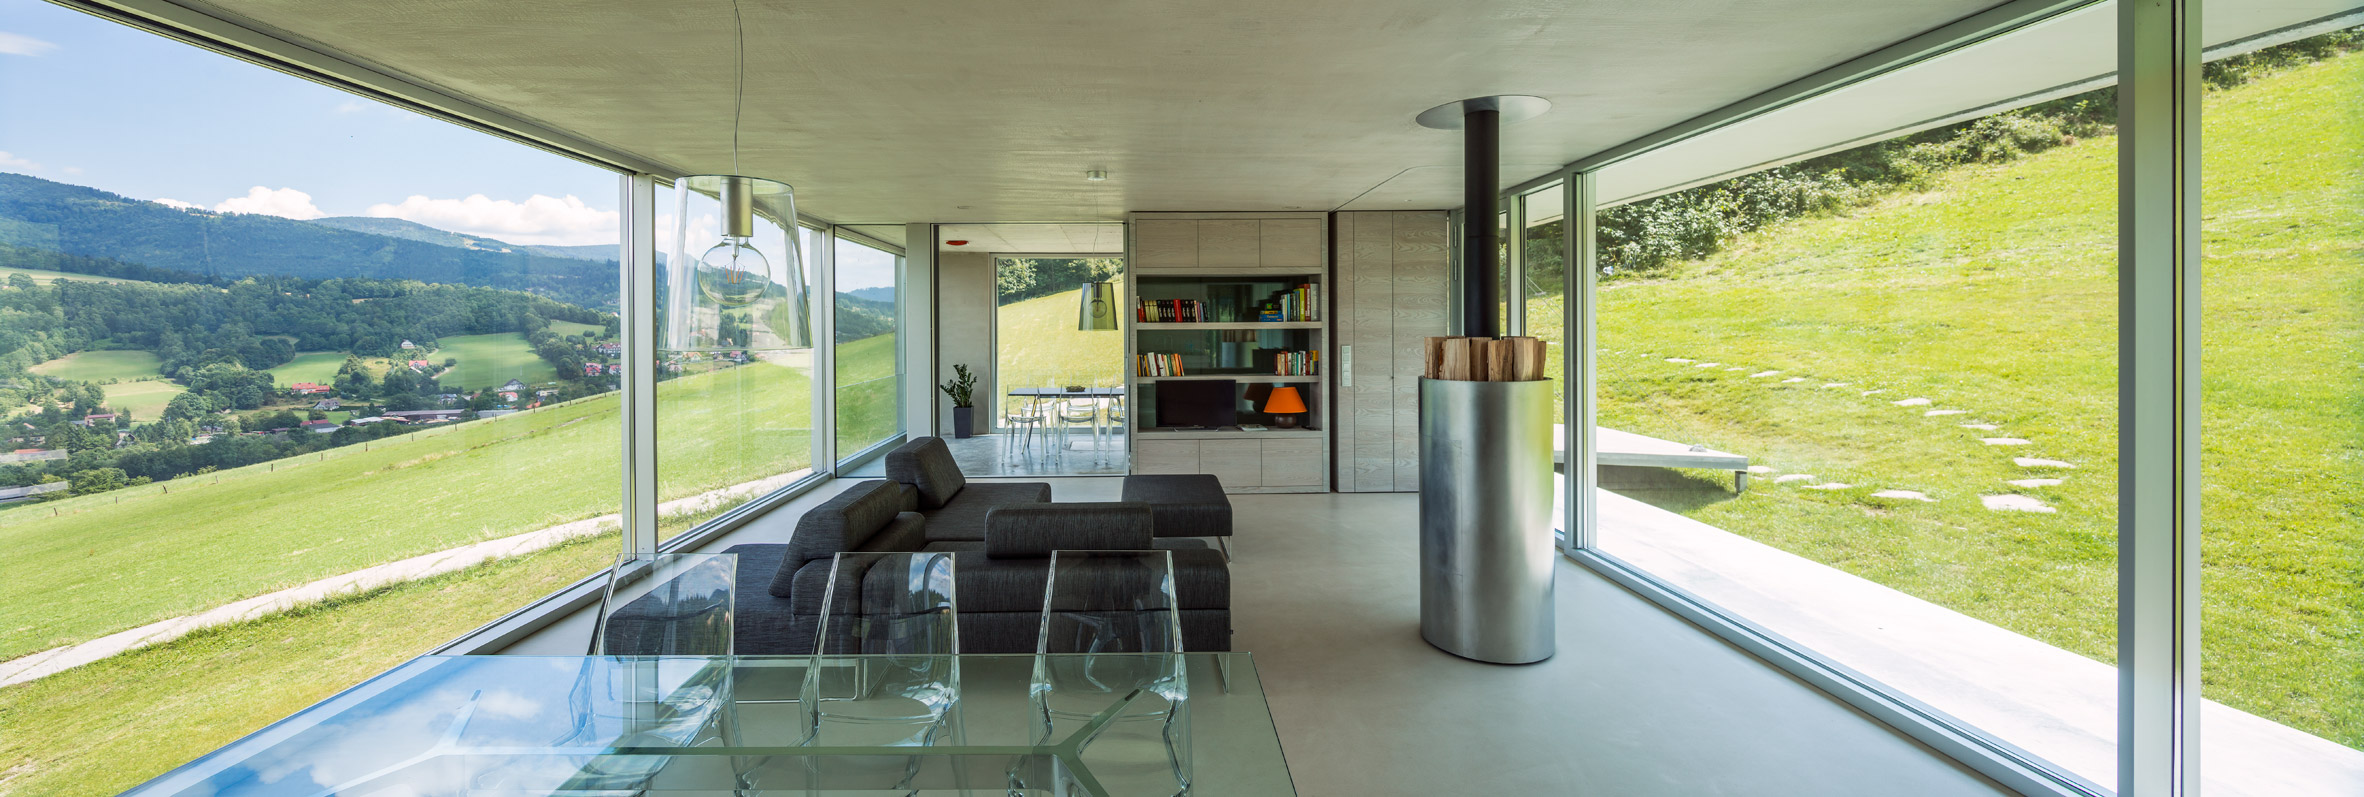 The inside of the home is open plan, with lots of modern materials used   metal, glass, acryl